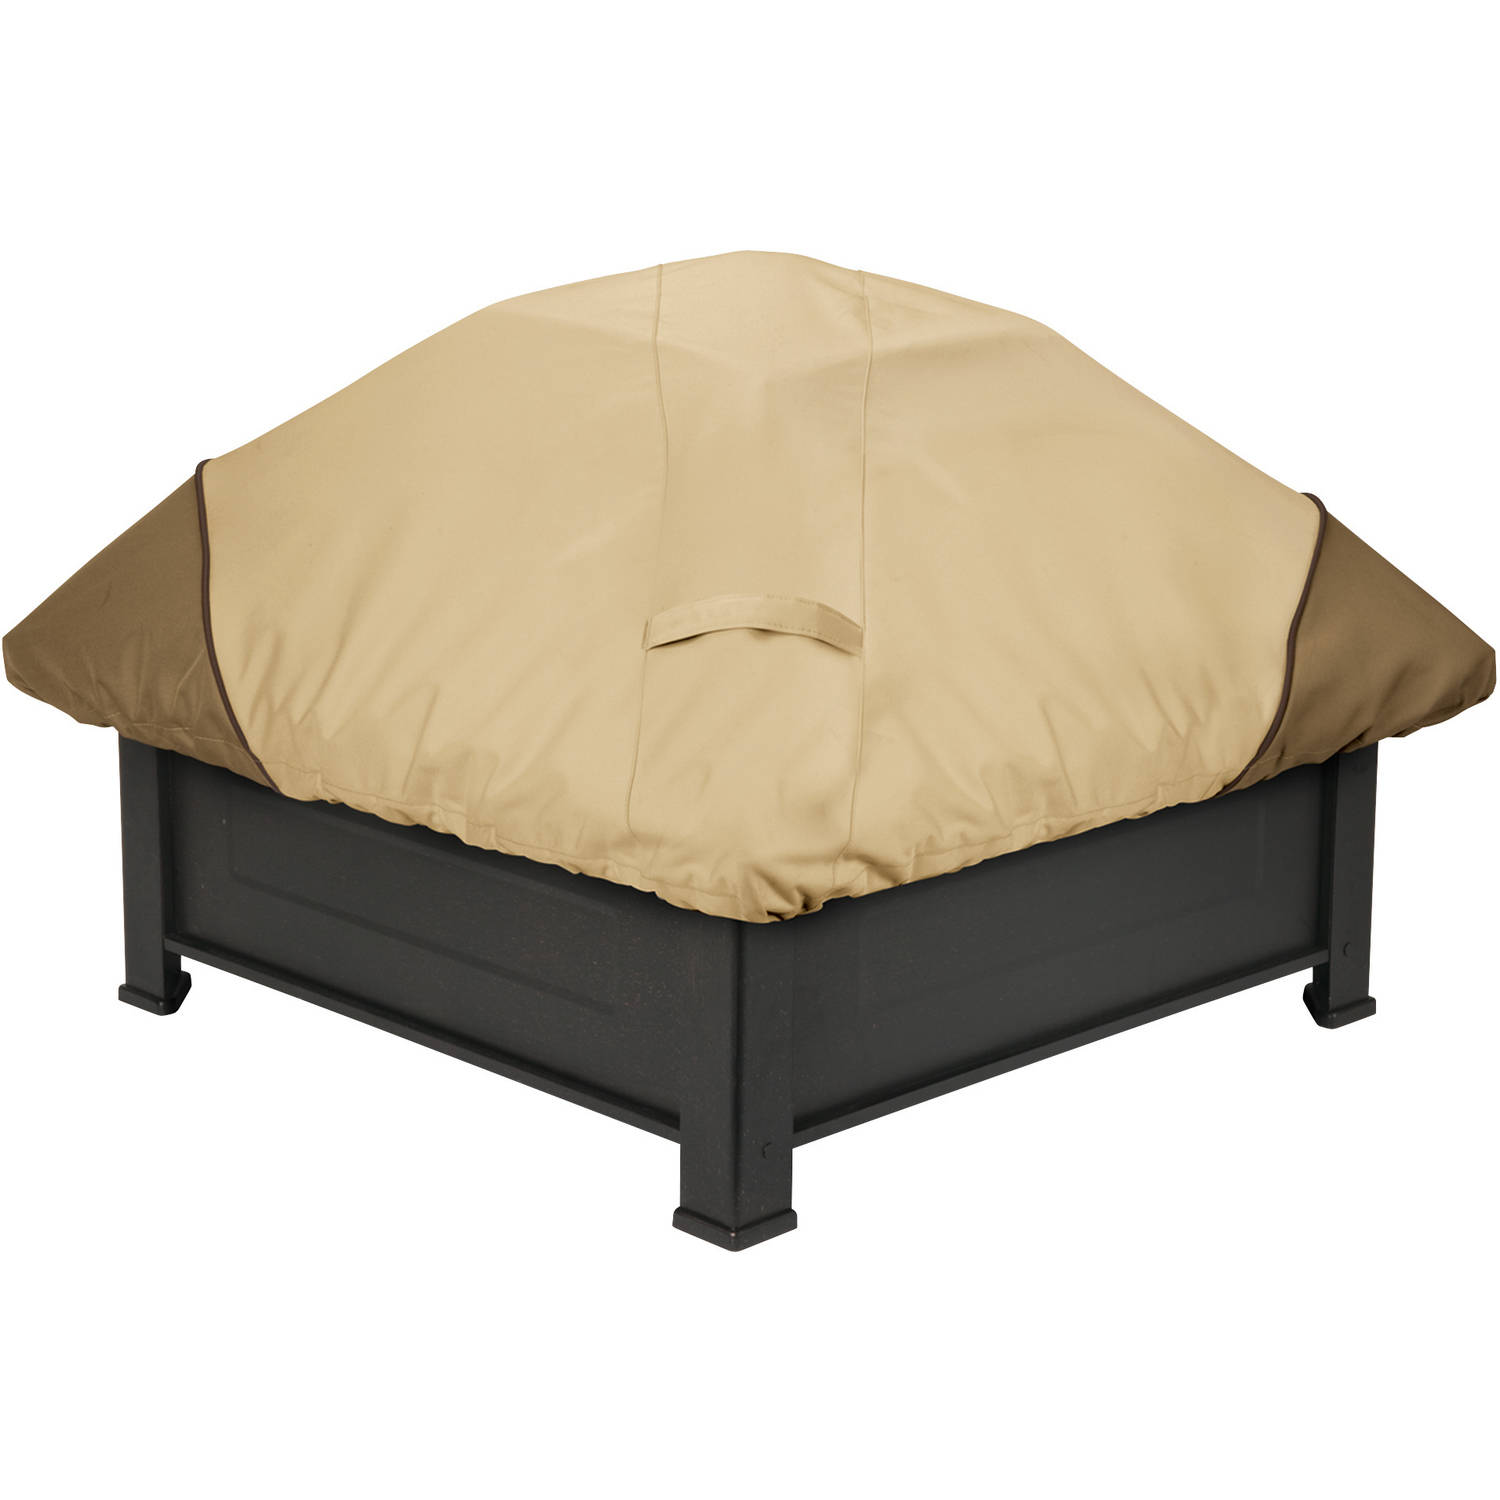 "Classic Accessories Veranda Square Fire Pit Patio Storage Cover, fits up to 40""W"